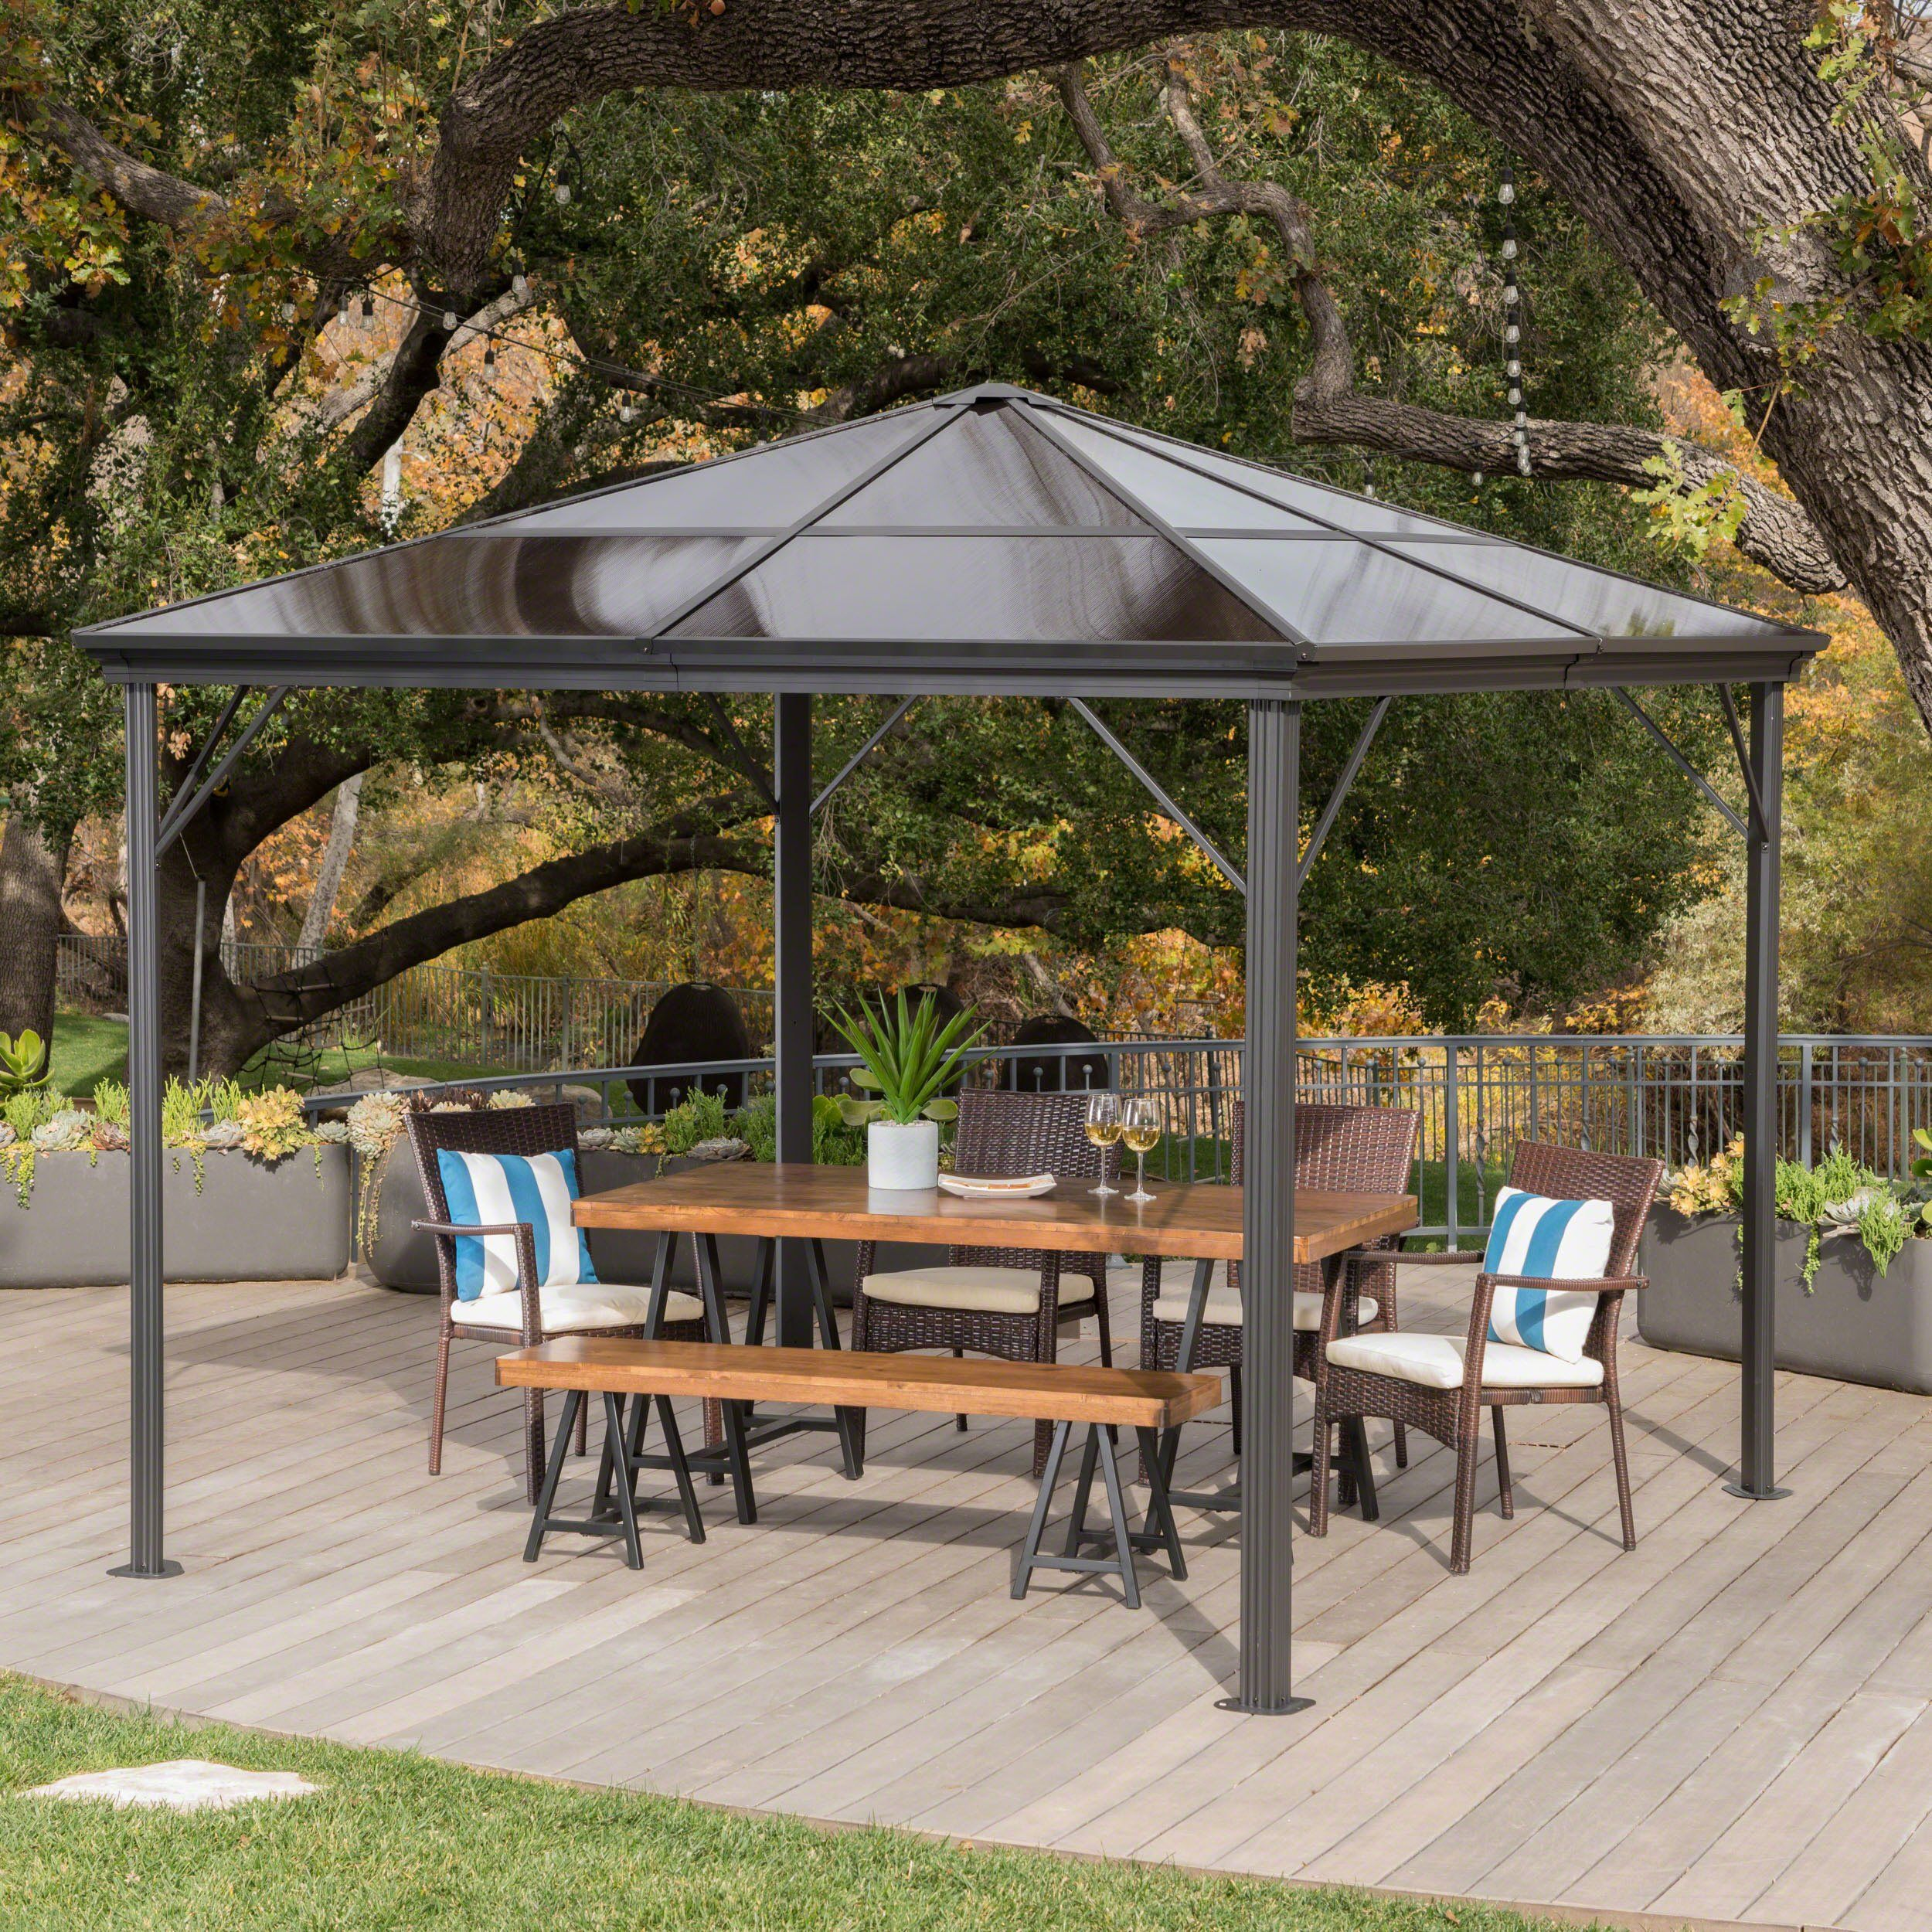 Halley Outdoor 10 X 10 Foot Black Rust Proof Aluminum Framed Hardtop Gazebo No Curtains Patio Gazebo Pergola Hardtop Gazebo